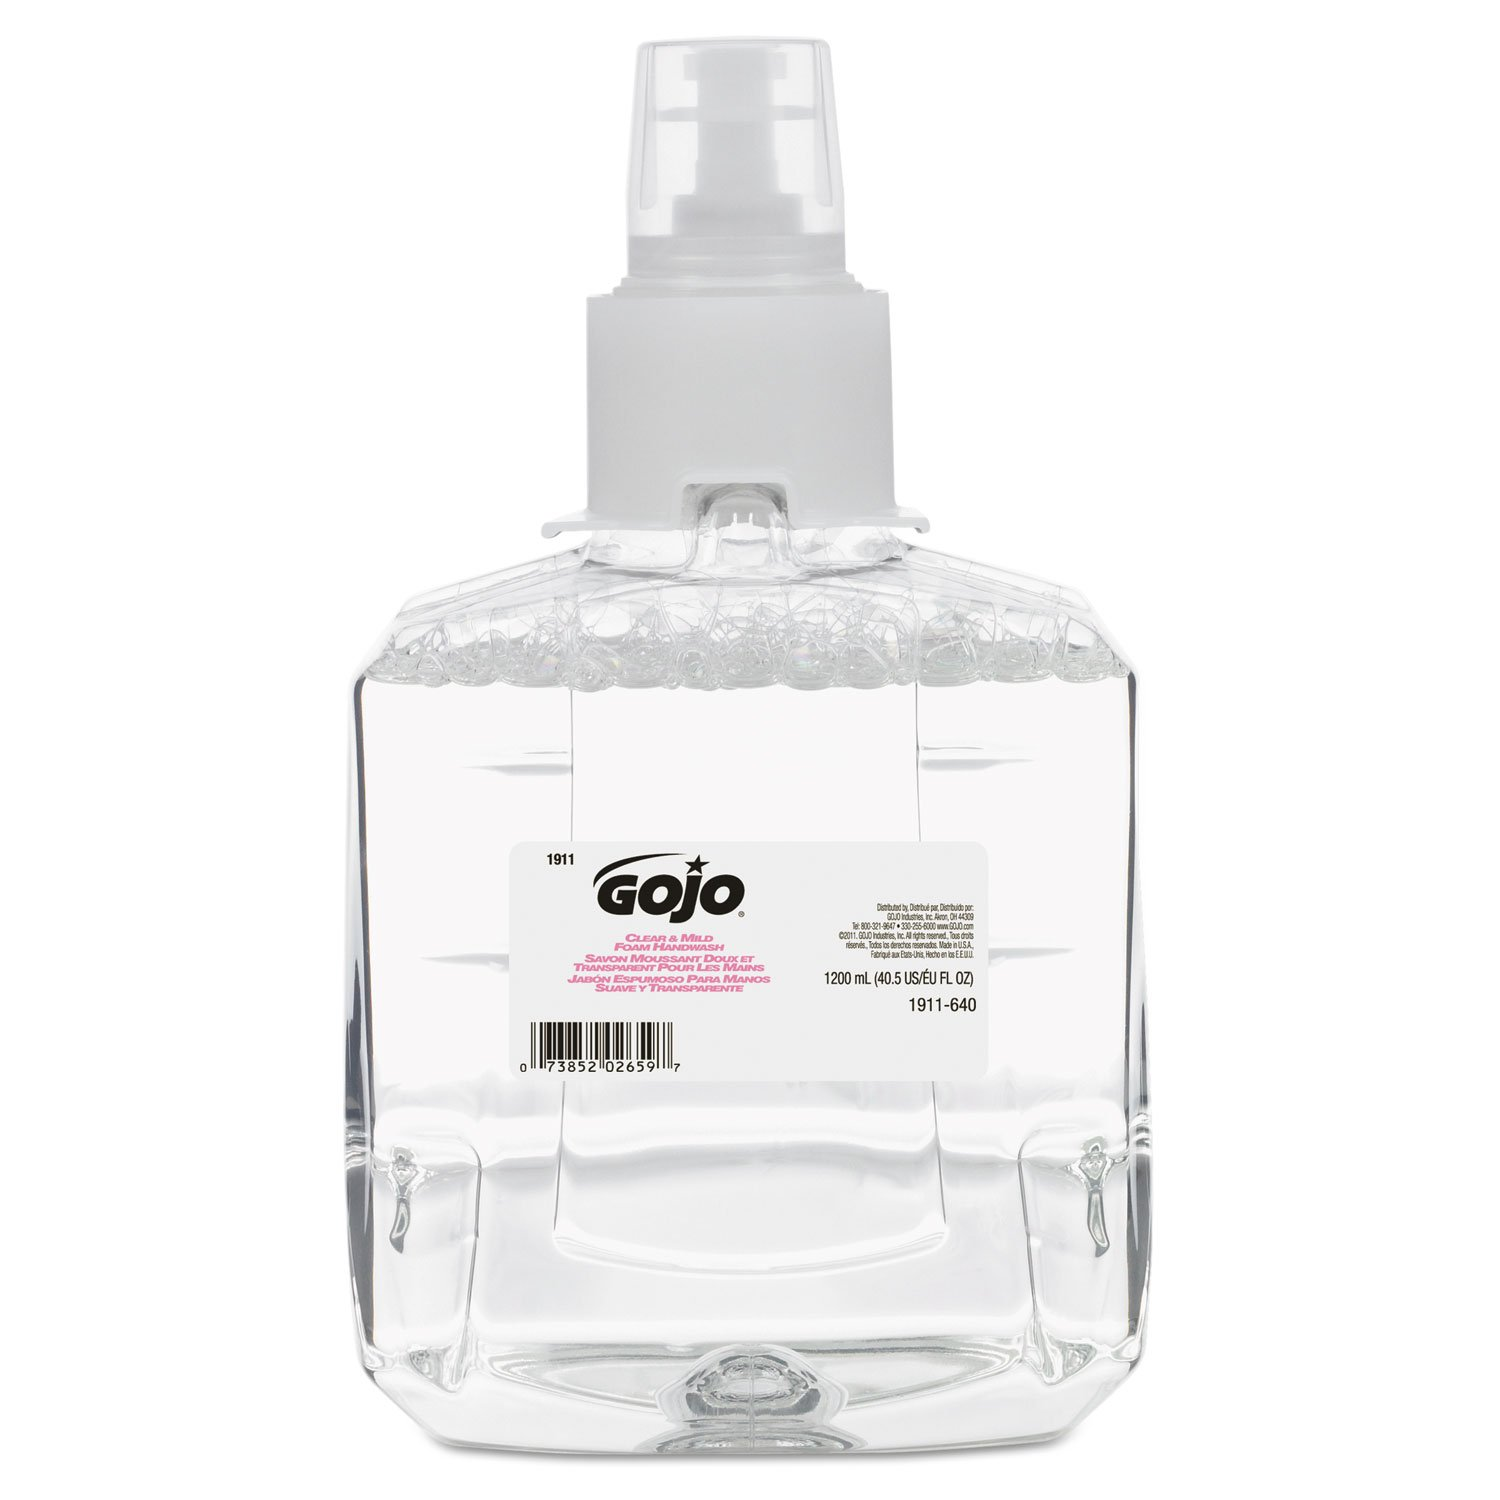 Gojo Foam Handwash LTX Refill, 1200ml, 2/CT,Clear/Mild